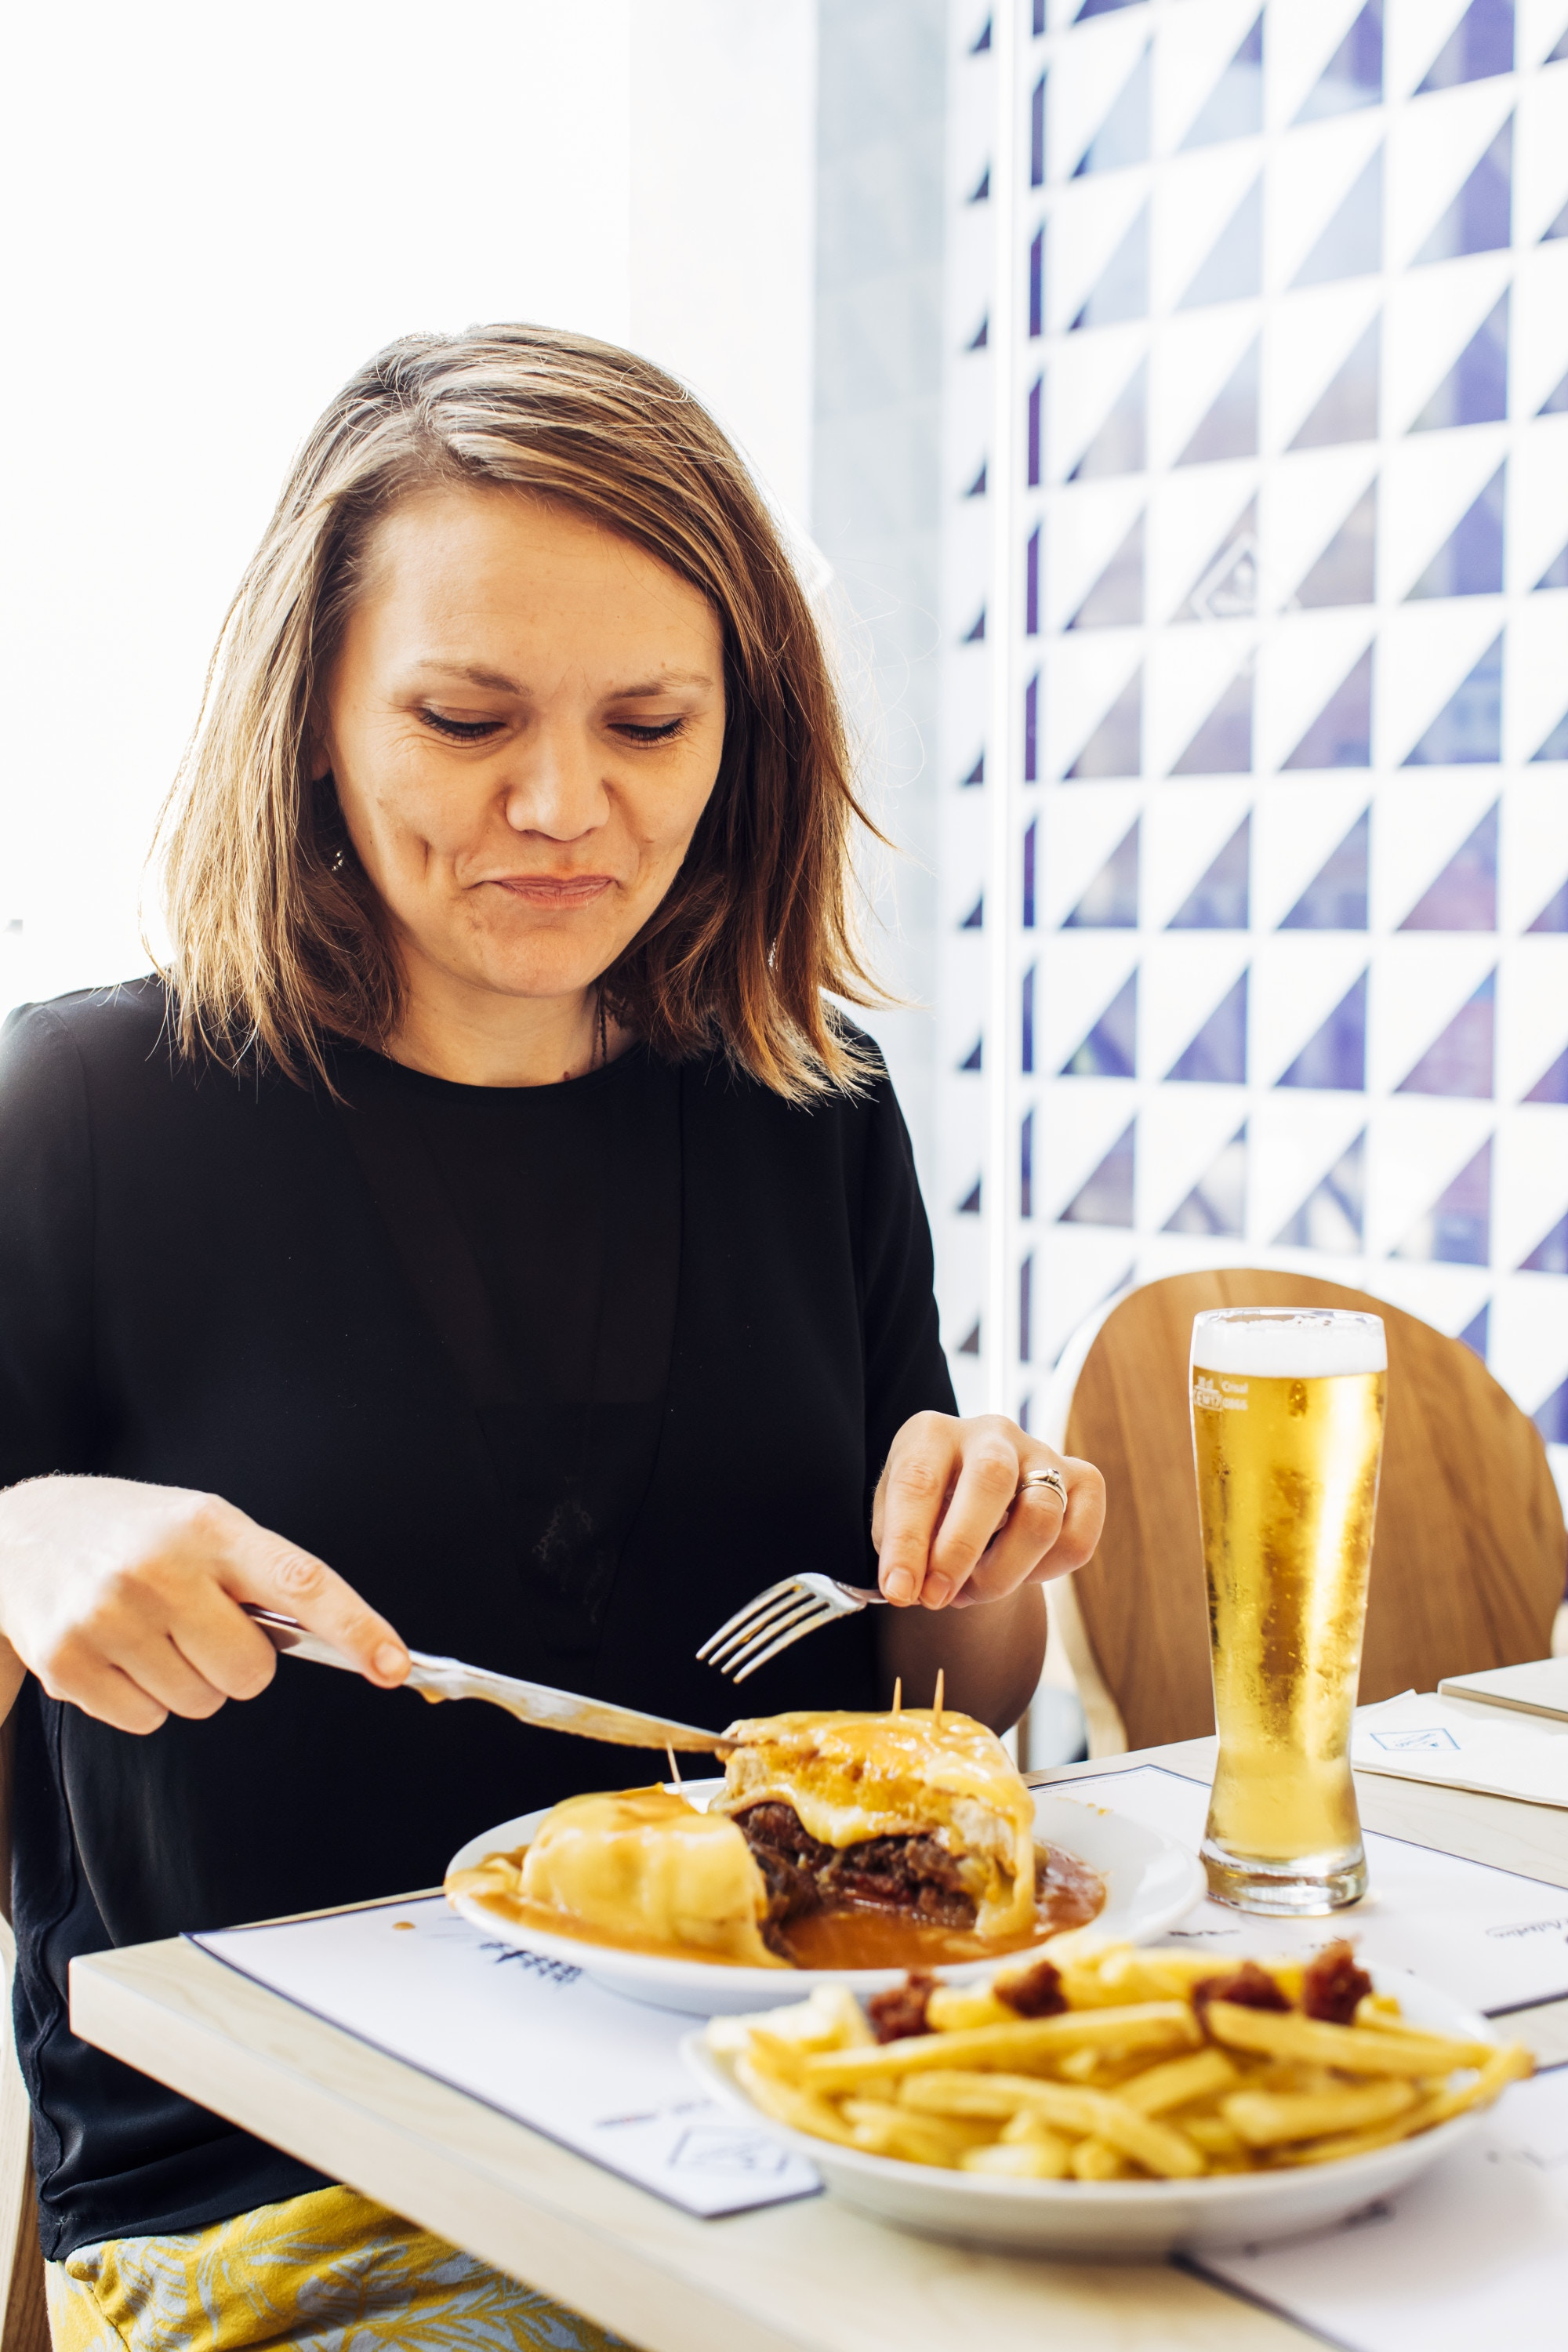 Orla tucking in to a traditional francesinha